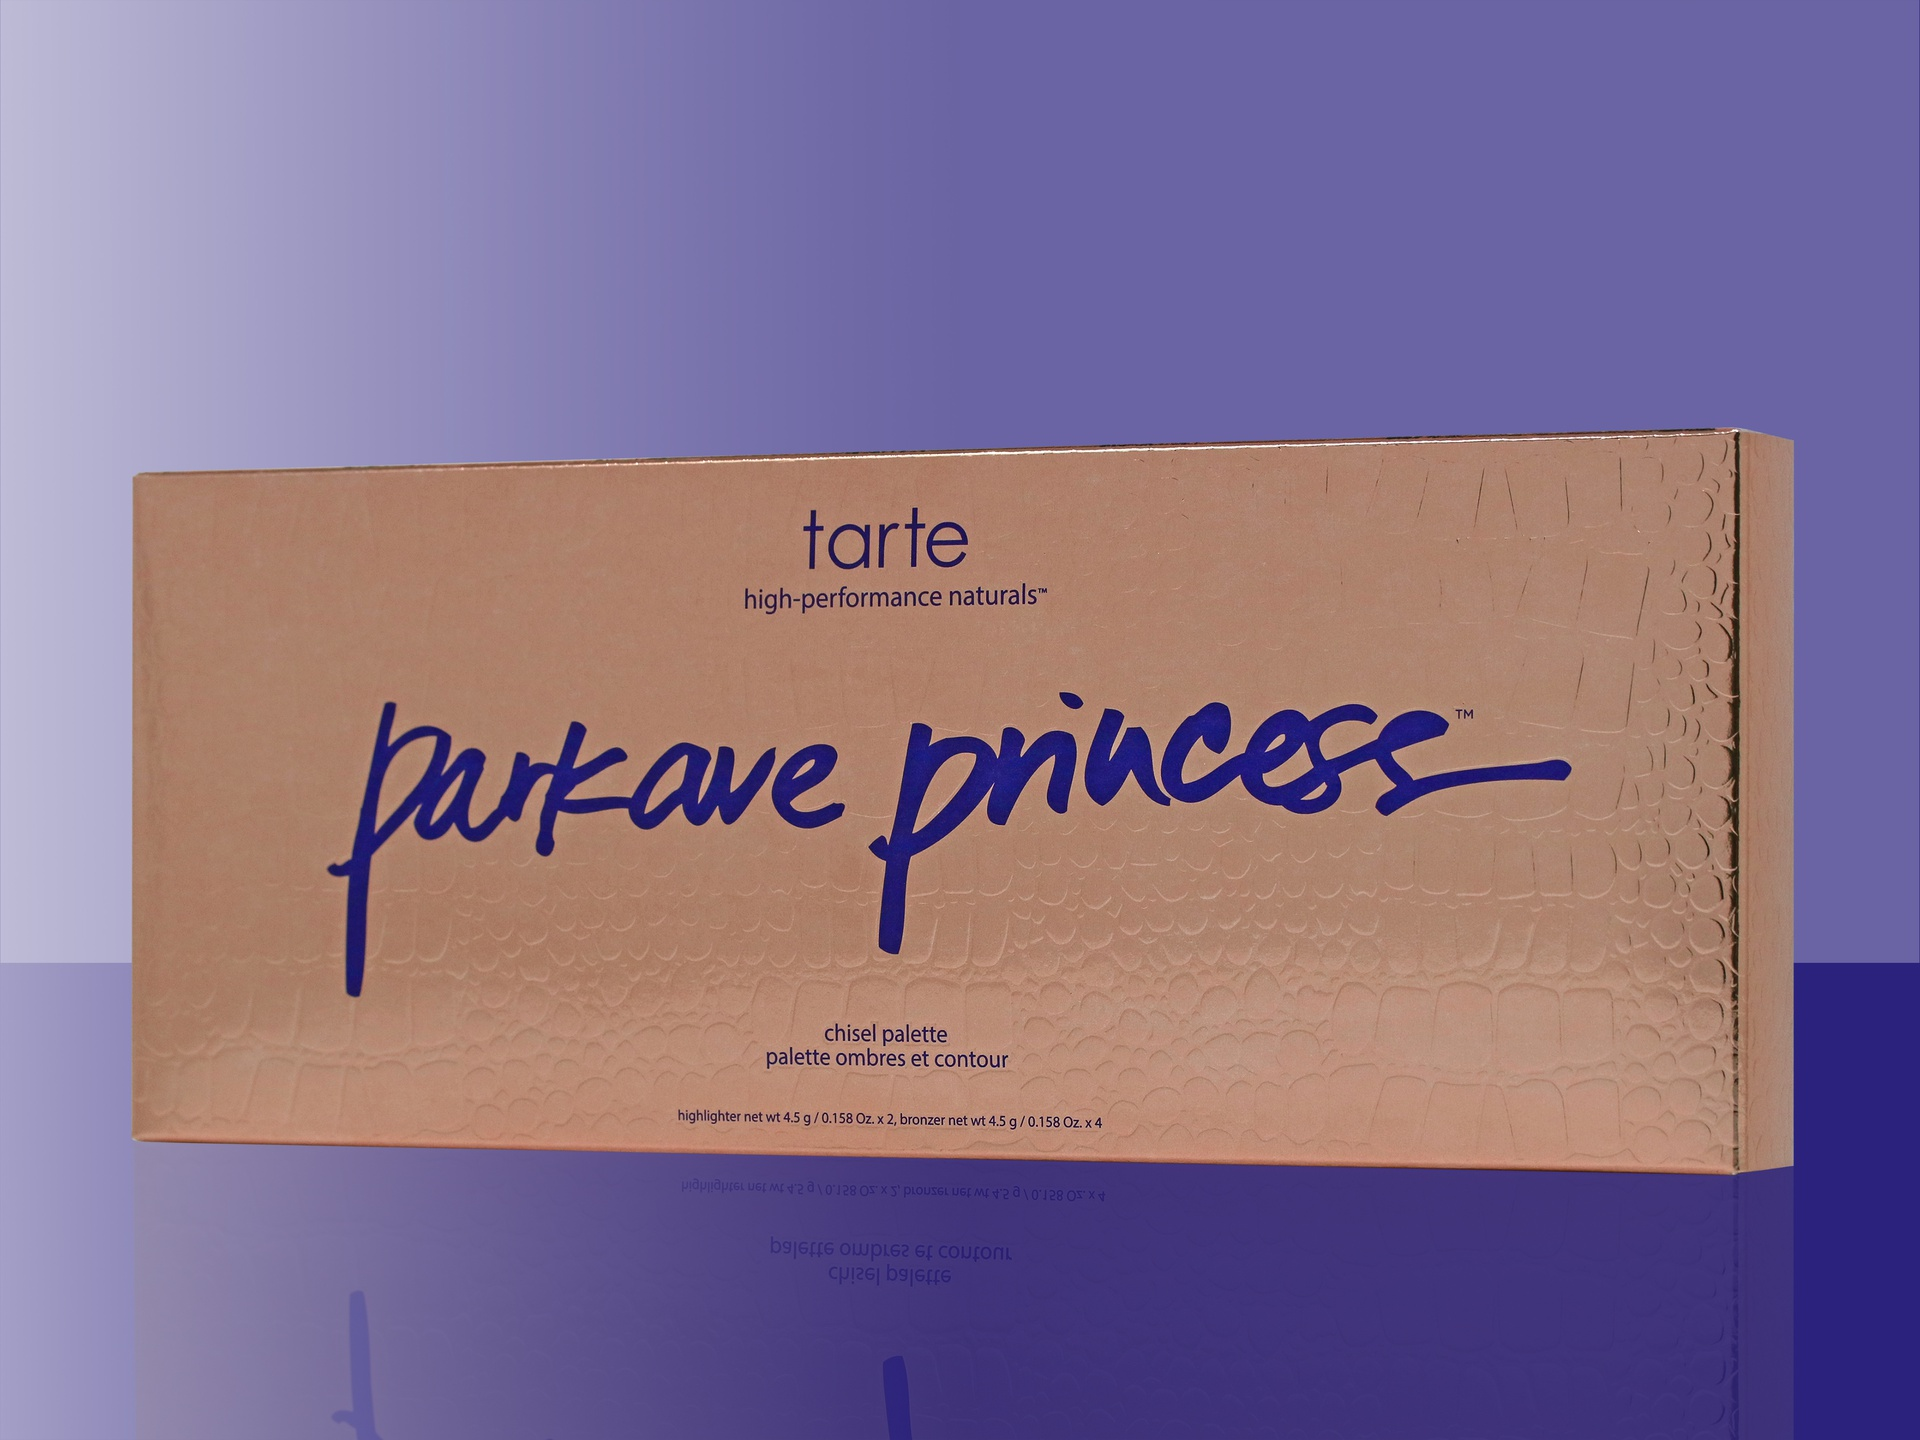 Tarte Park Ave Princess Chisel Palette packaging